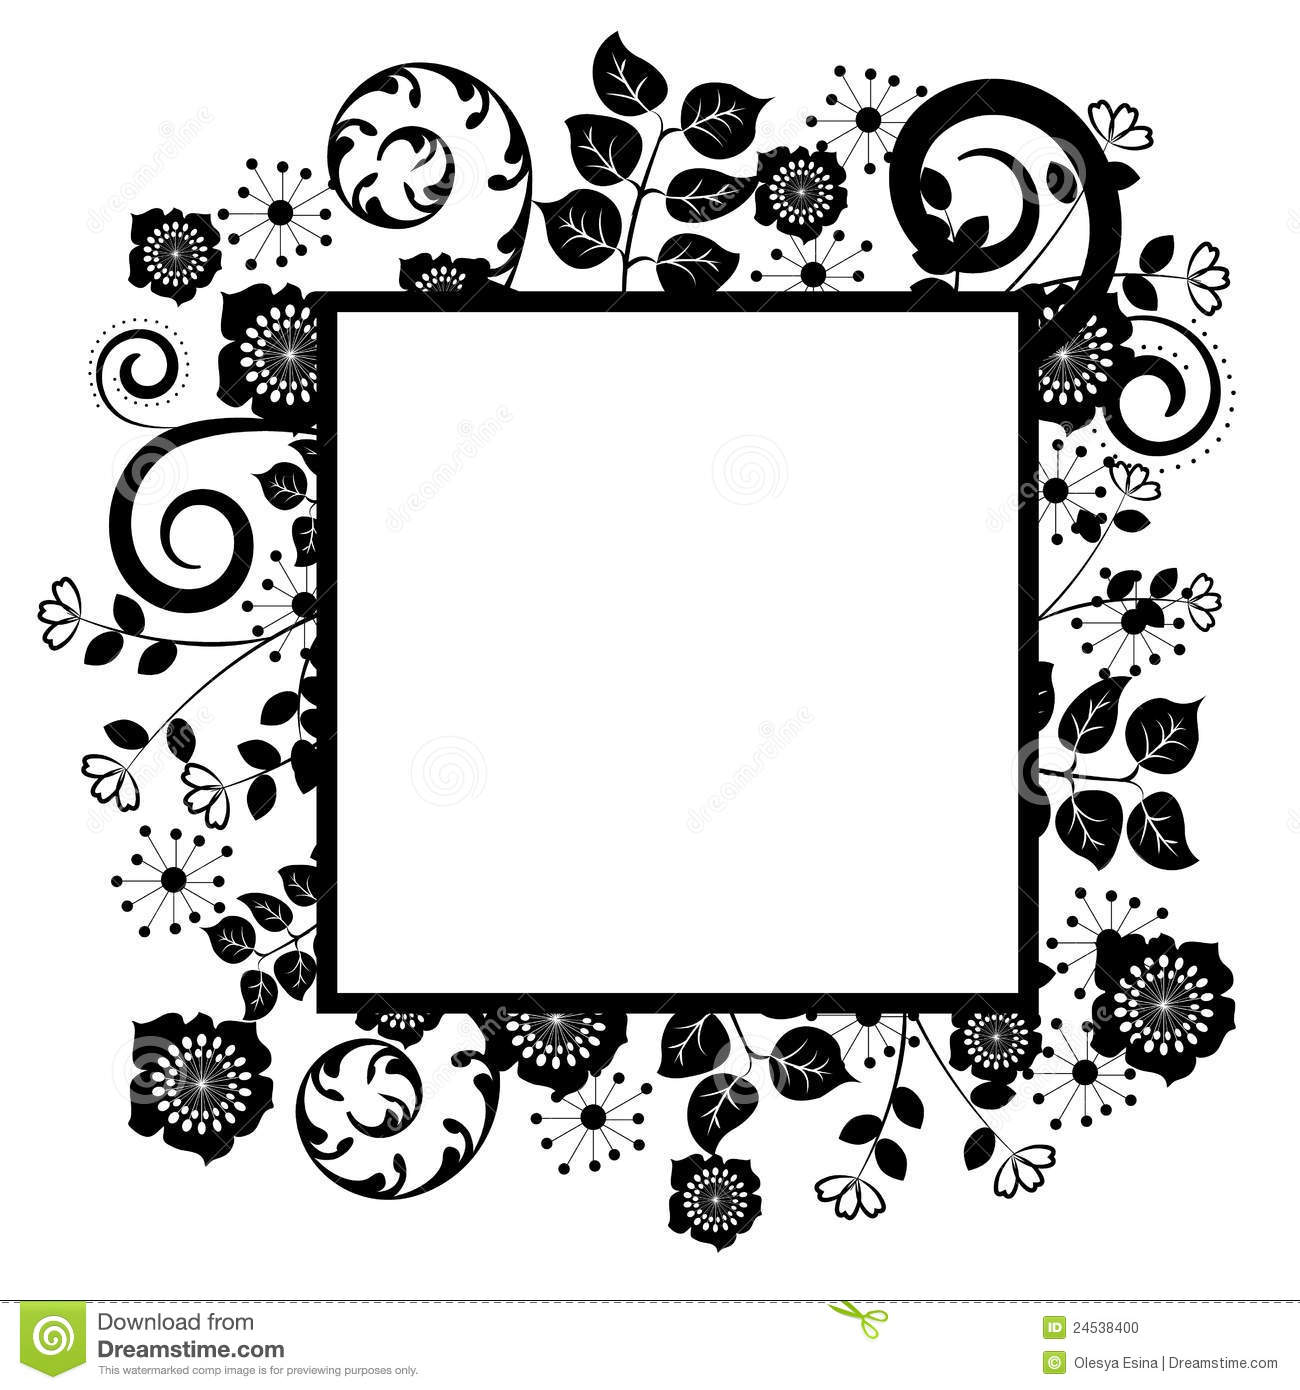 Stock Photo Silhouette Border Image24538400 additionally Conjunto De Folhas Decorativas Vintage 1250310 besides Circle Frame also Apple Cartoon Clipart Black And White together with Jungle Leaf Clipart Black And White. on pictures of leaves border